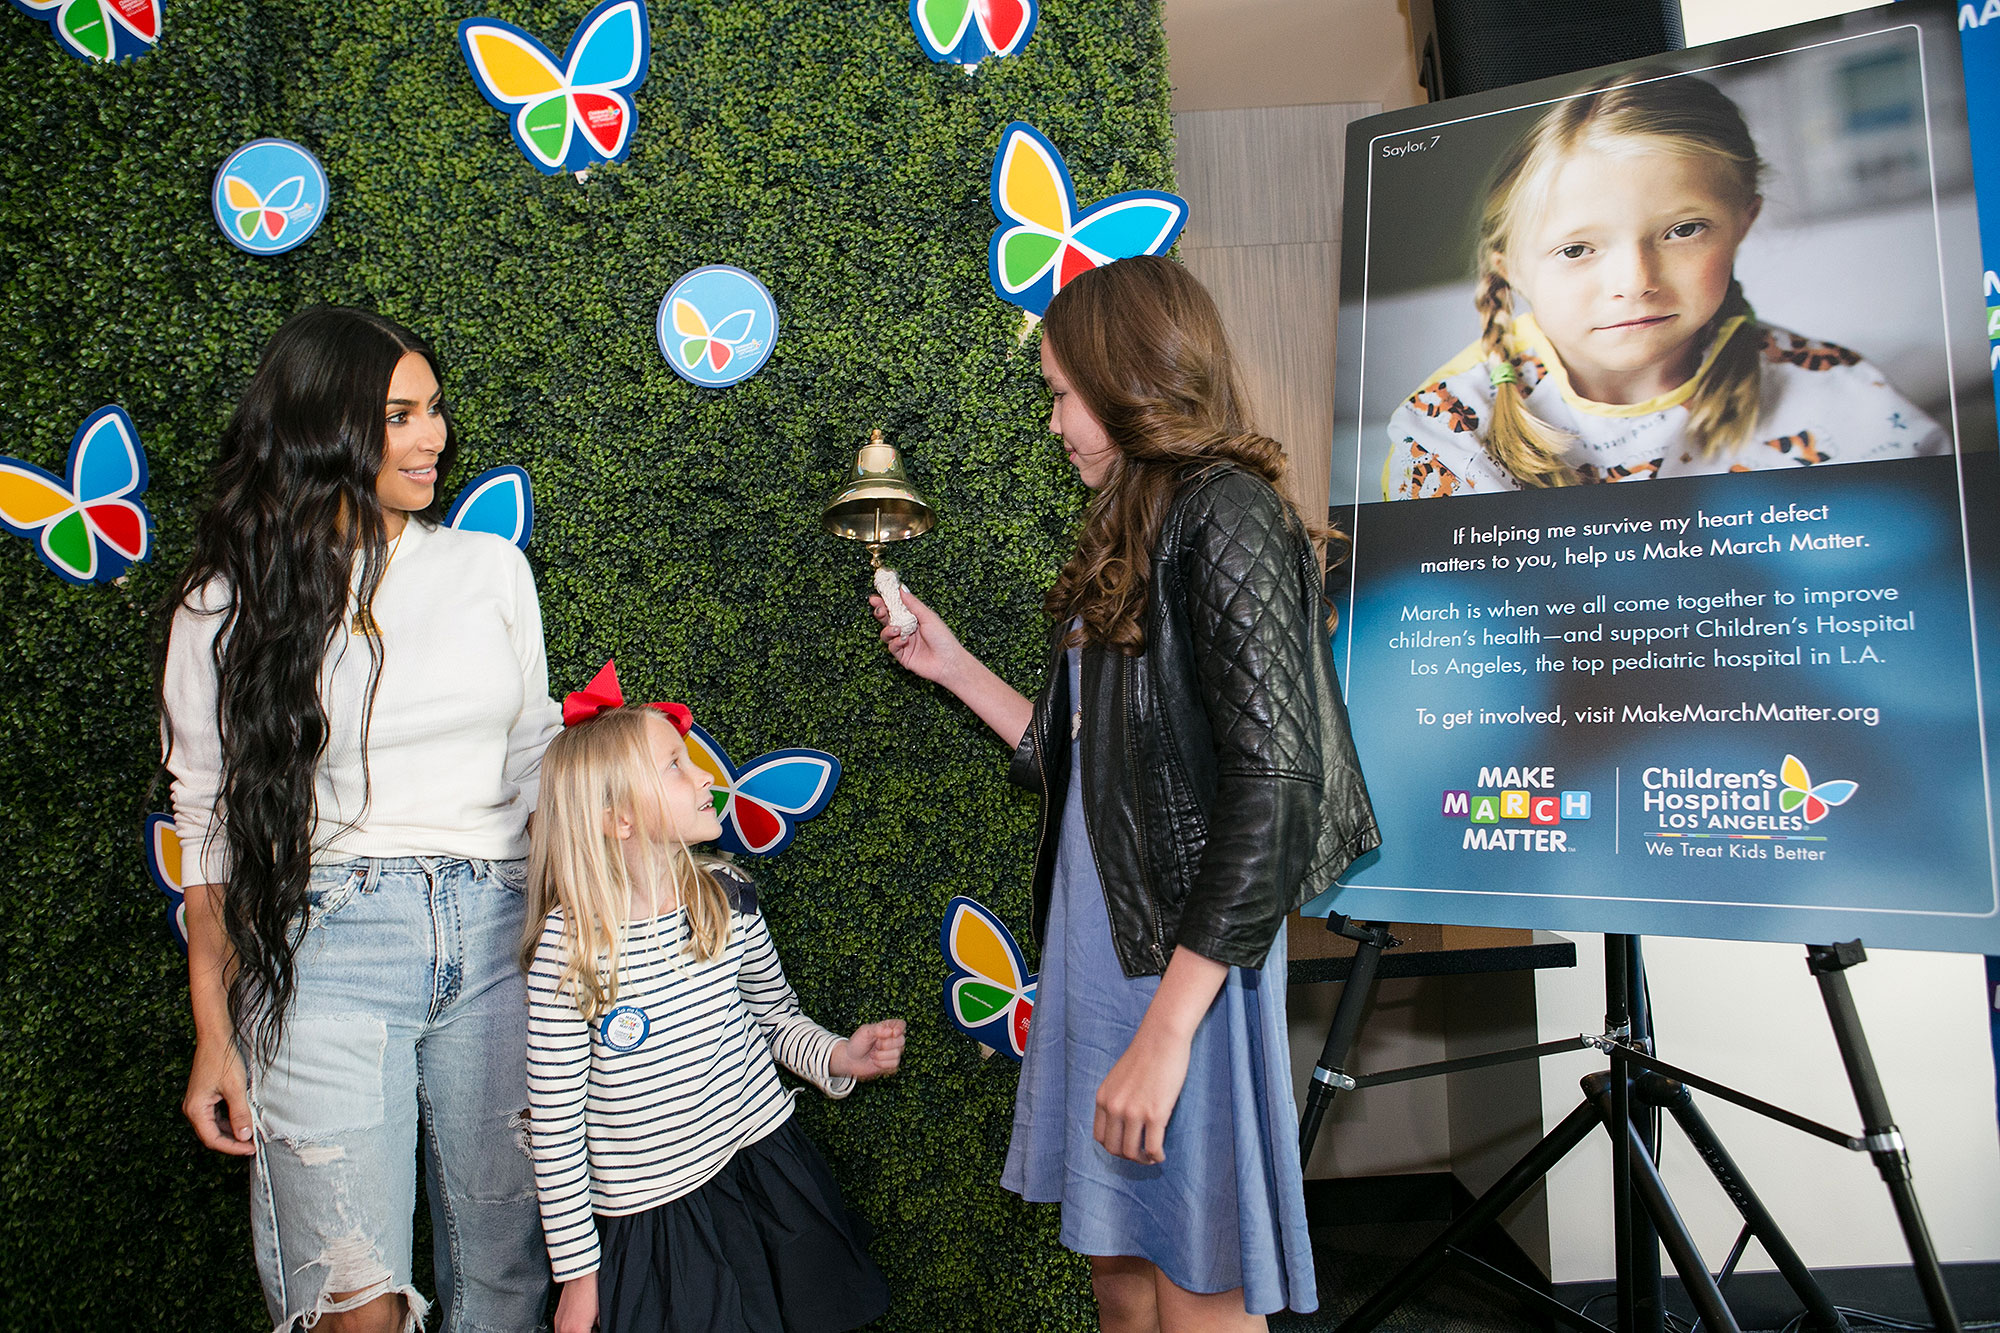 Kim Kardashian West Credit: Children's Hospital Los Angeles